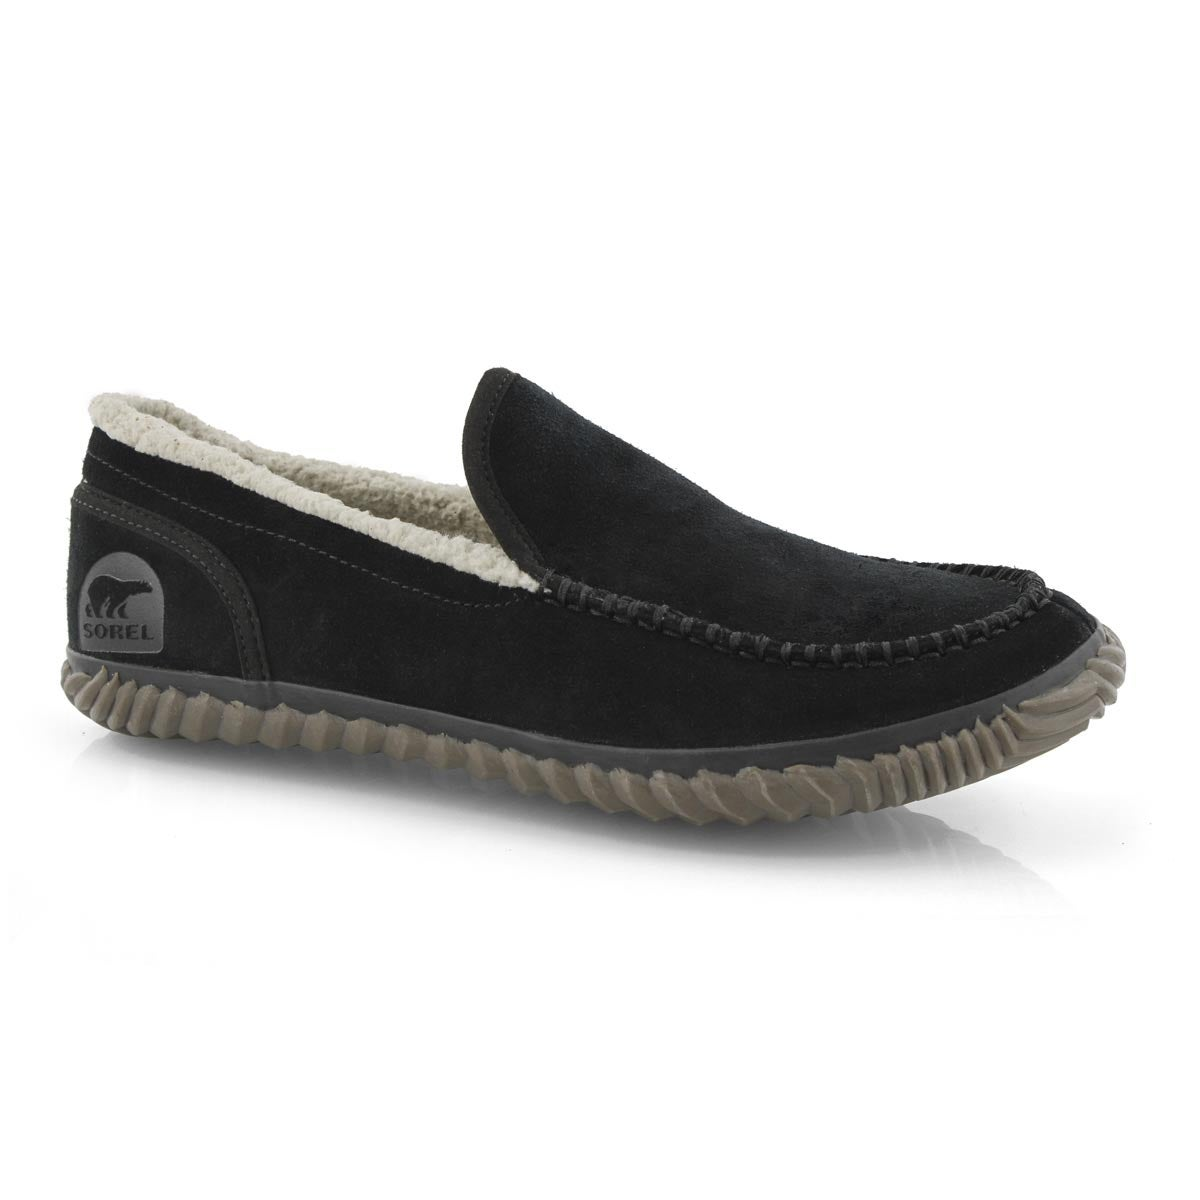 Mns Dude Moc black slipper